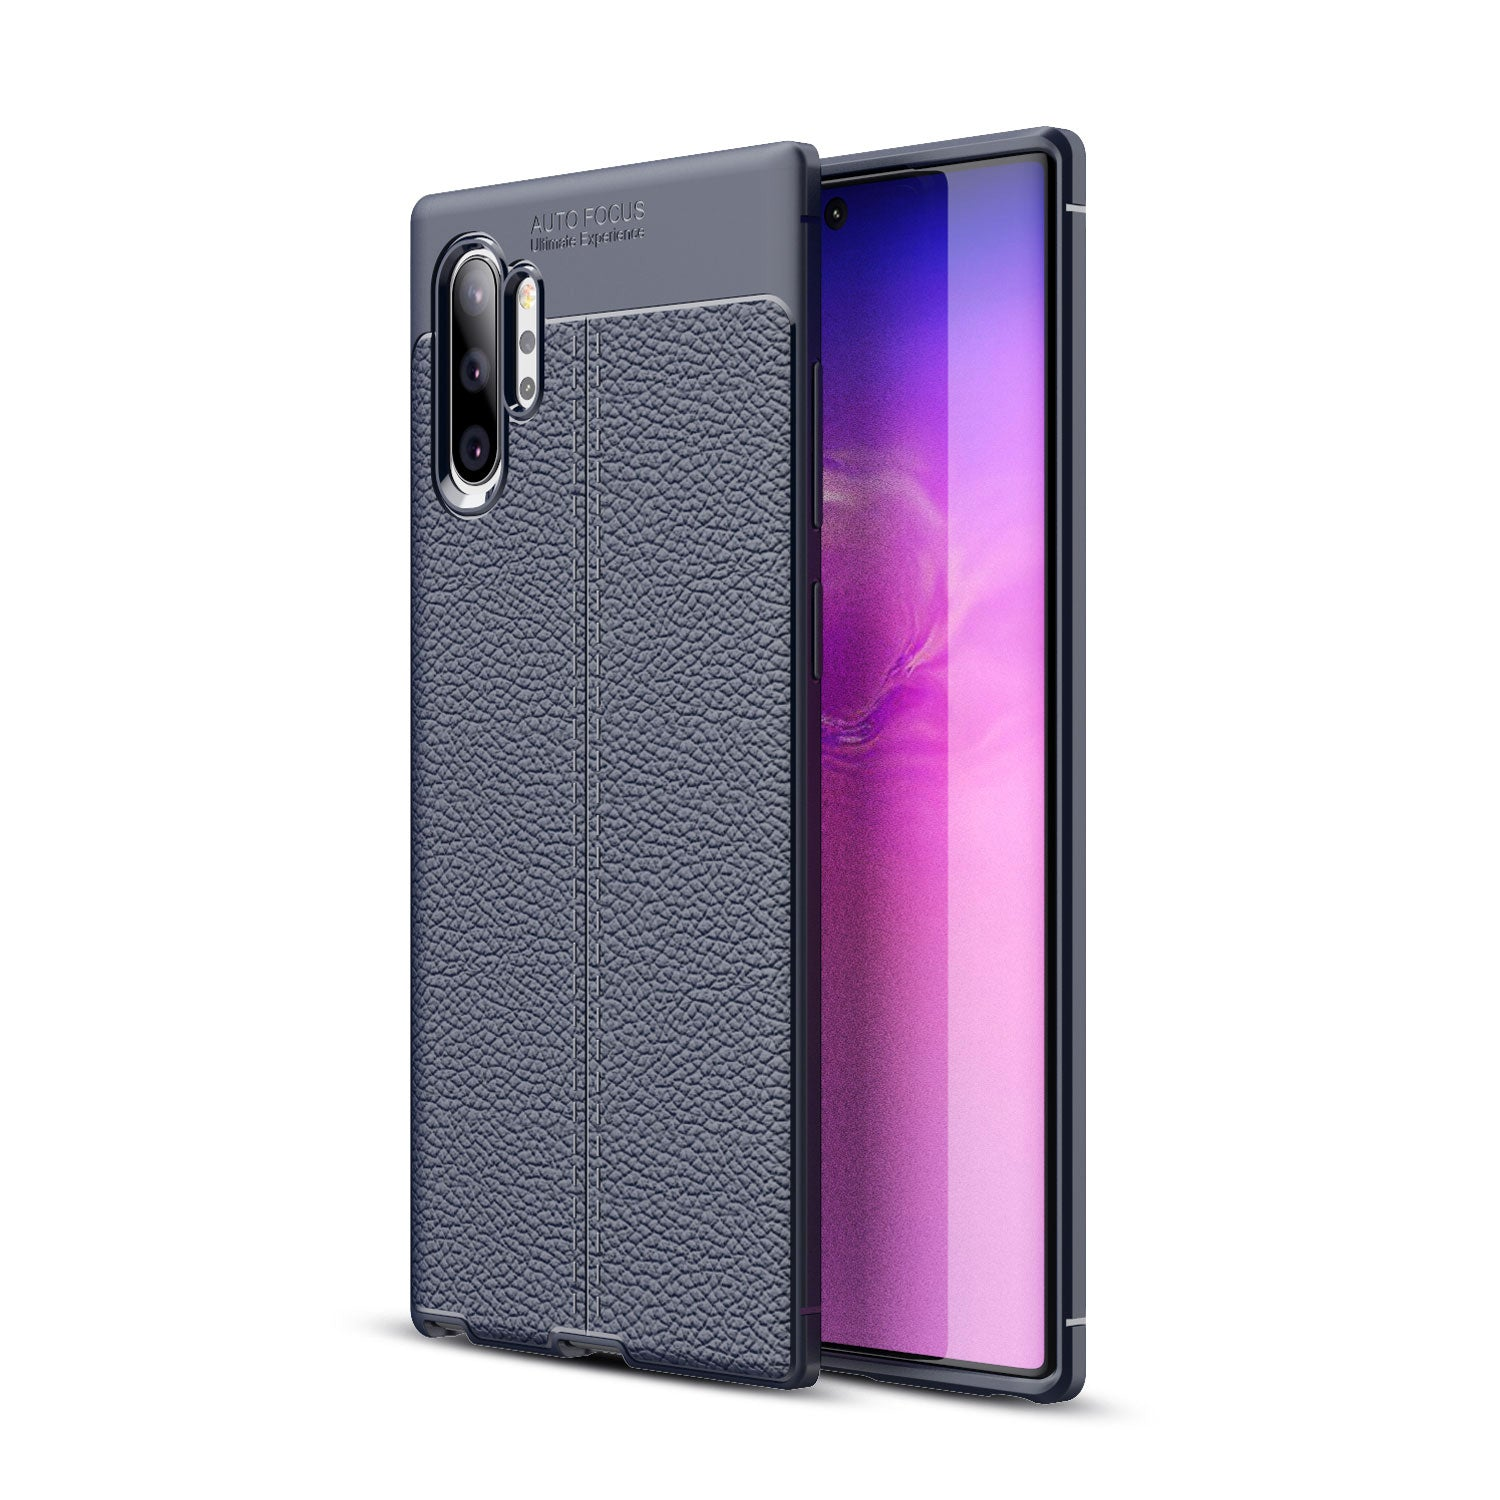 HYTX Galaxy Note 10+ Case Skin Texture ( Cyan-Blue )